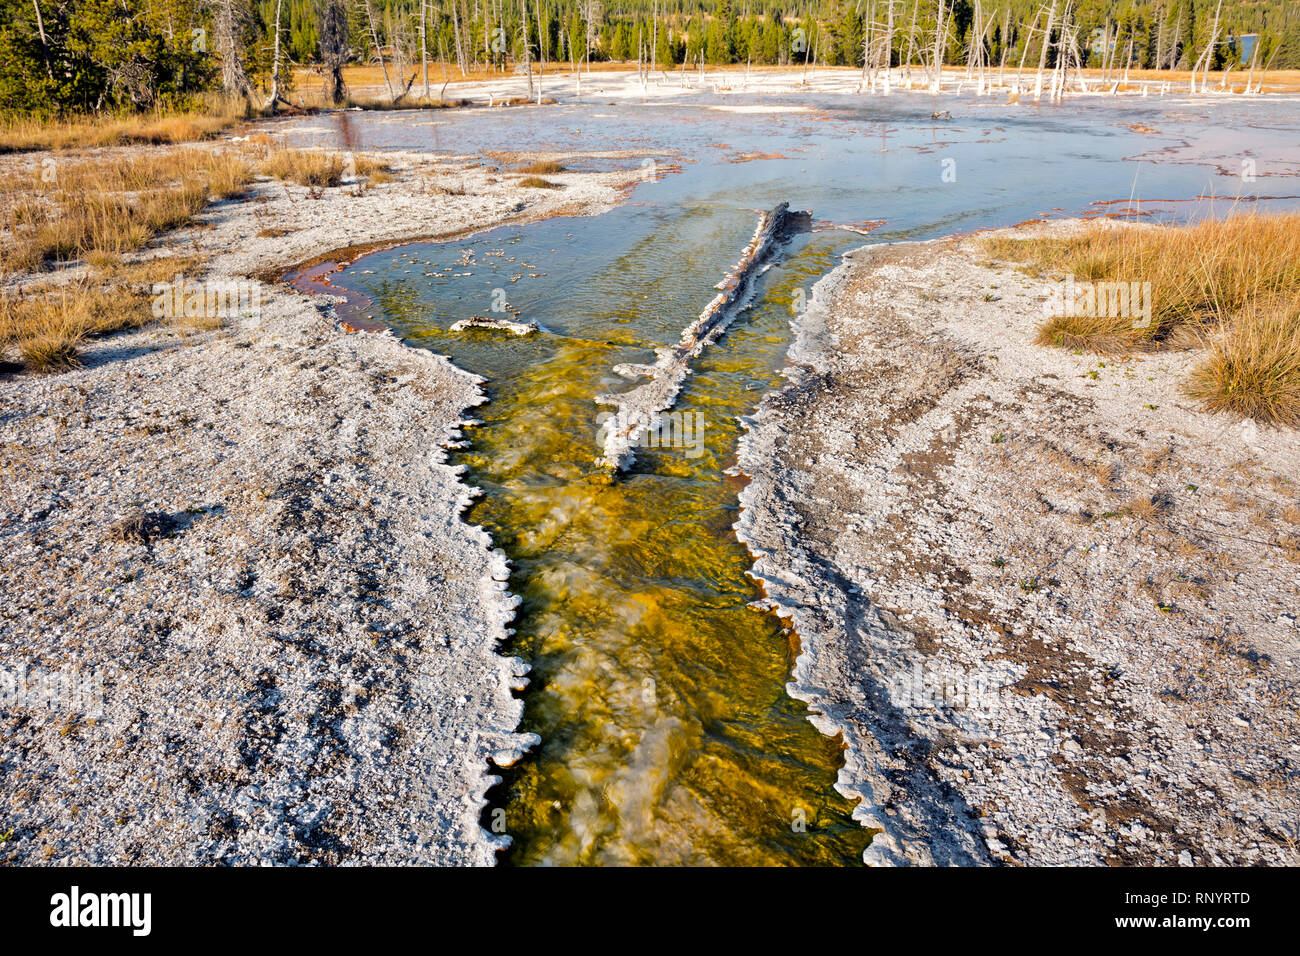 WYOMING - Bulbous sinter lining a colorful creek full of cyanobacteria in the Rustic Group of Heart Lake Geyser Basin in the Yellowstone backcountry. - Stock Image